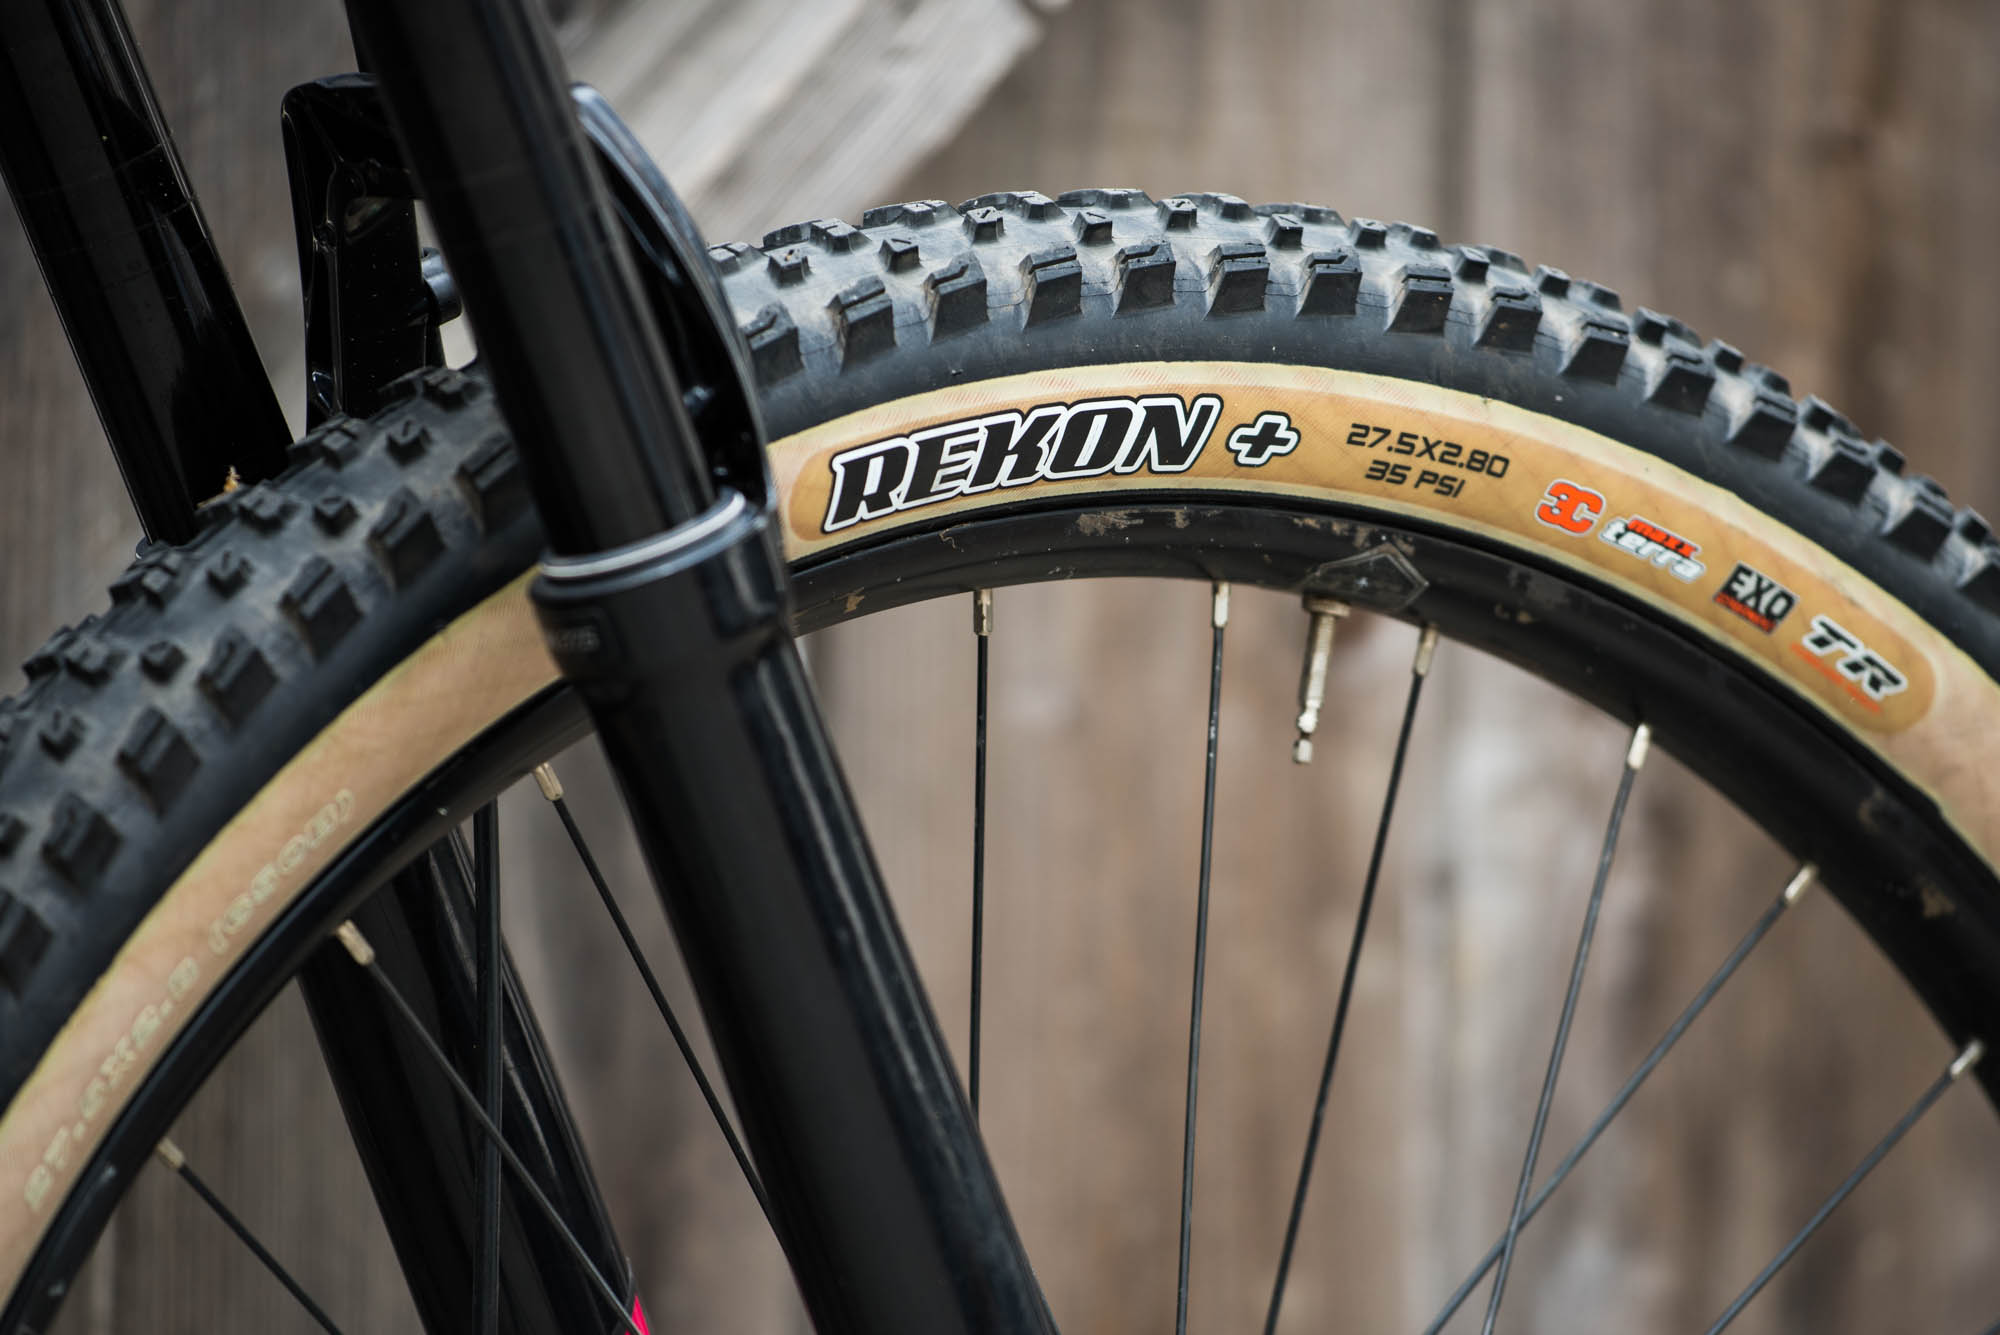 Maxxis Rekon 27 5 X 2 8 Skinwall Tire Review Outsiding